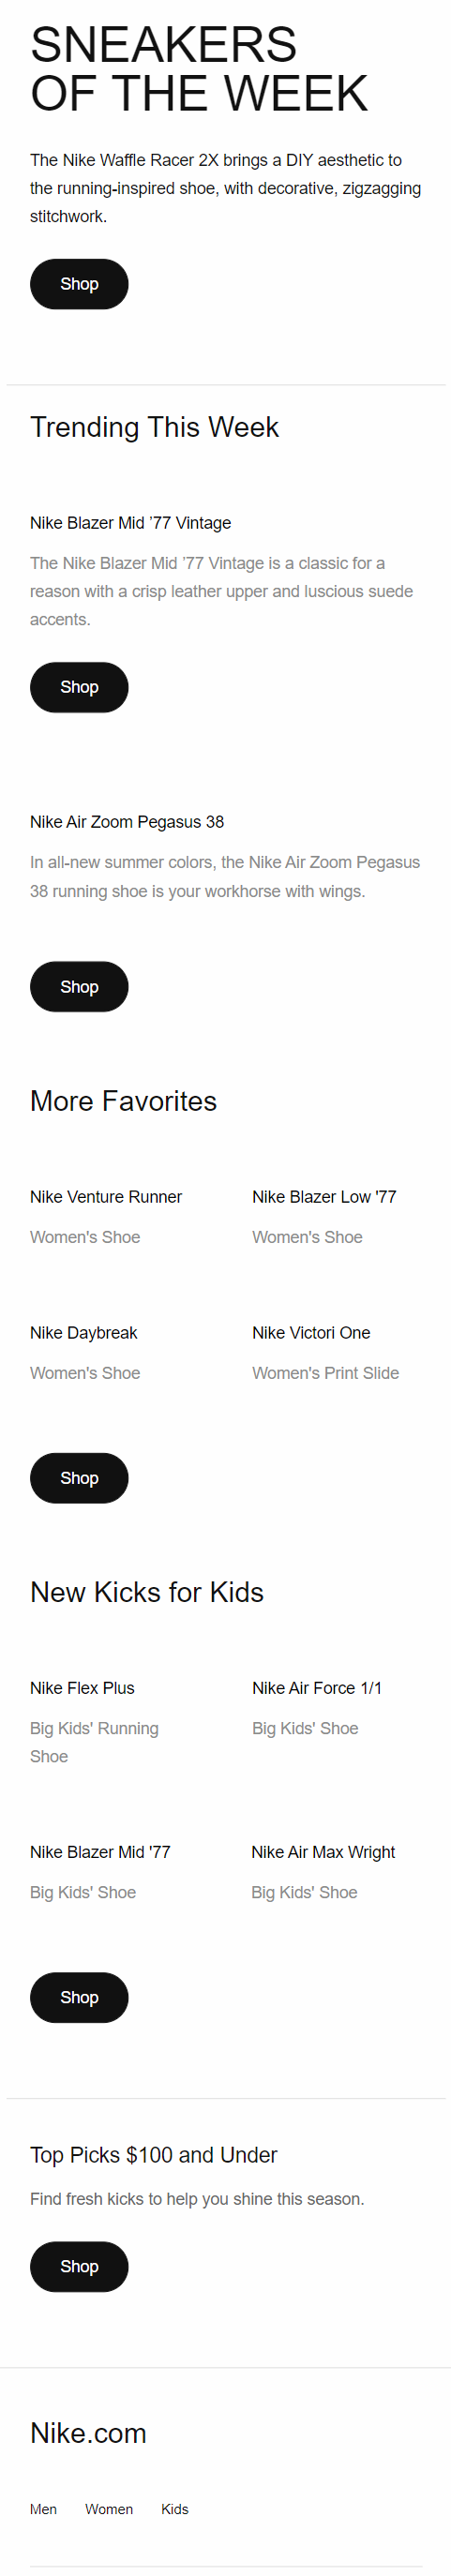 nike-hot-this-week-waffle-racer-blazer-and-more